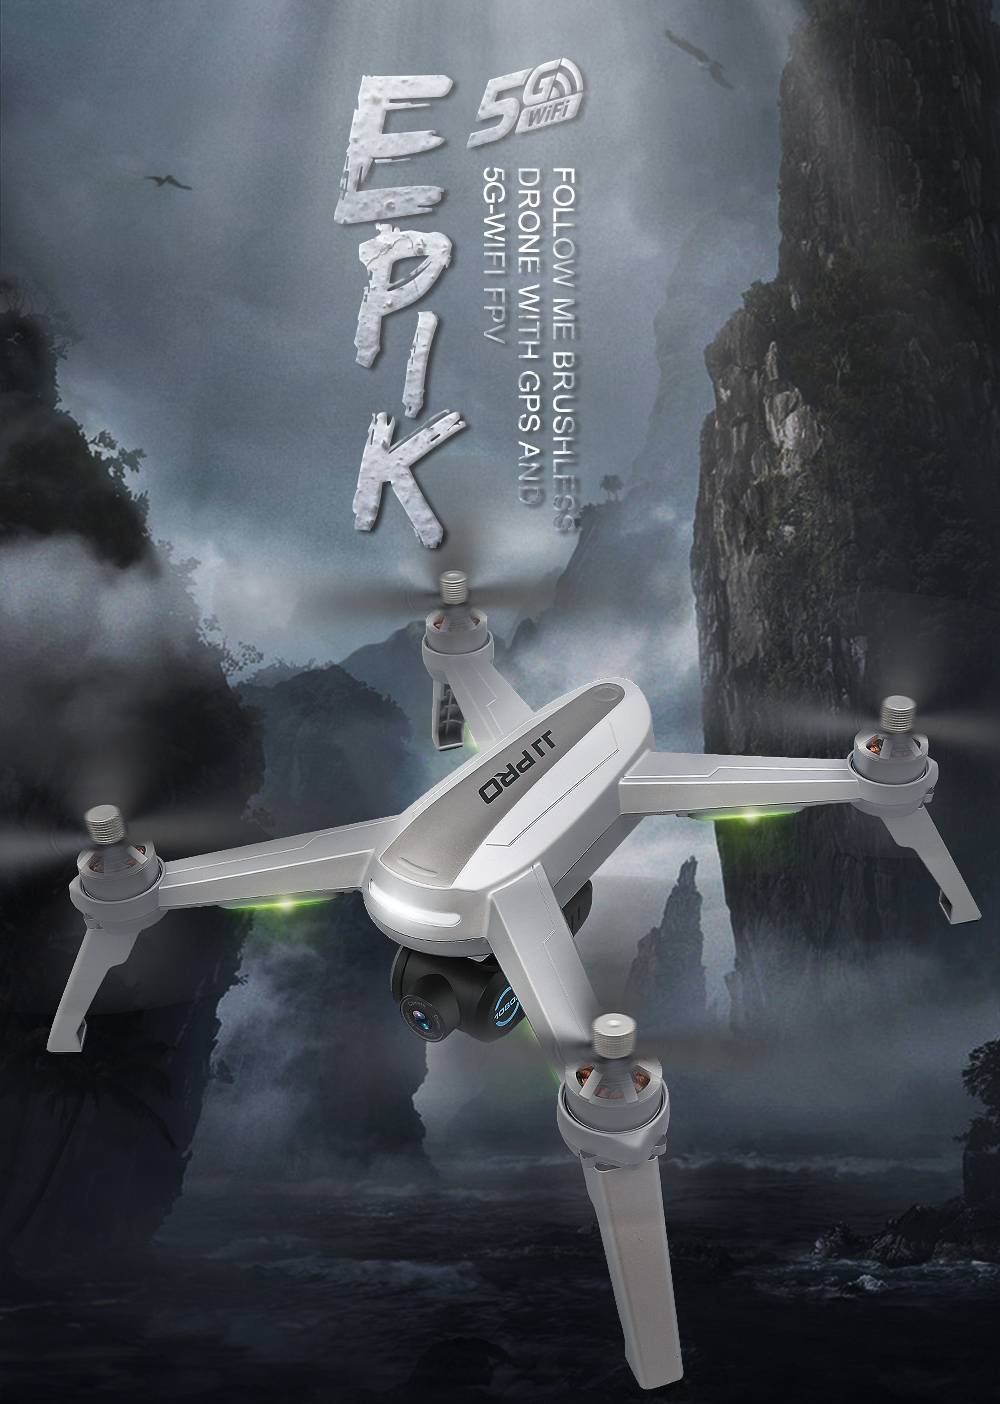 JJRC JJPRO X5 Professional Drone with Camera 1080P Brushless Motor High Hold Quadcopter Auto Follow GPS Positioning Fly  Mins 4